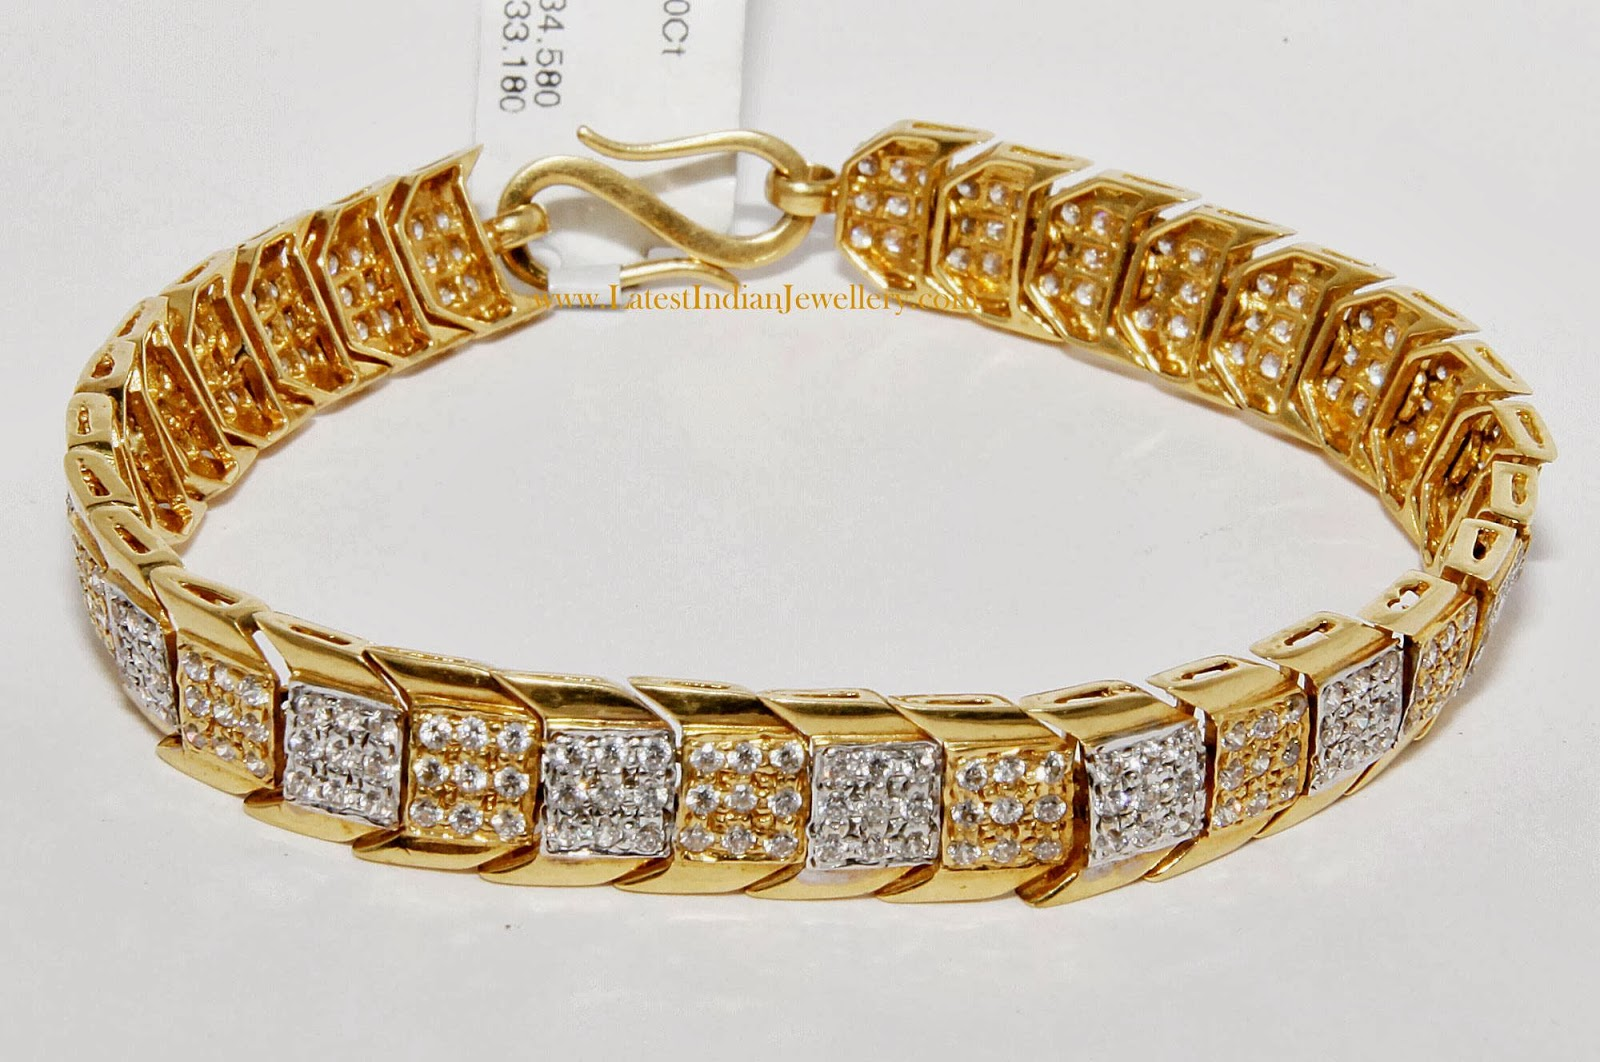 Gents Bracelet Designs In Gold